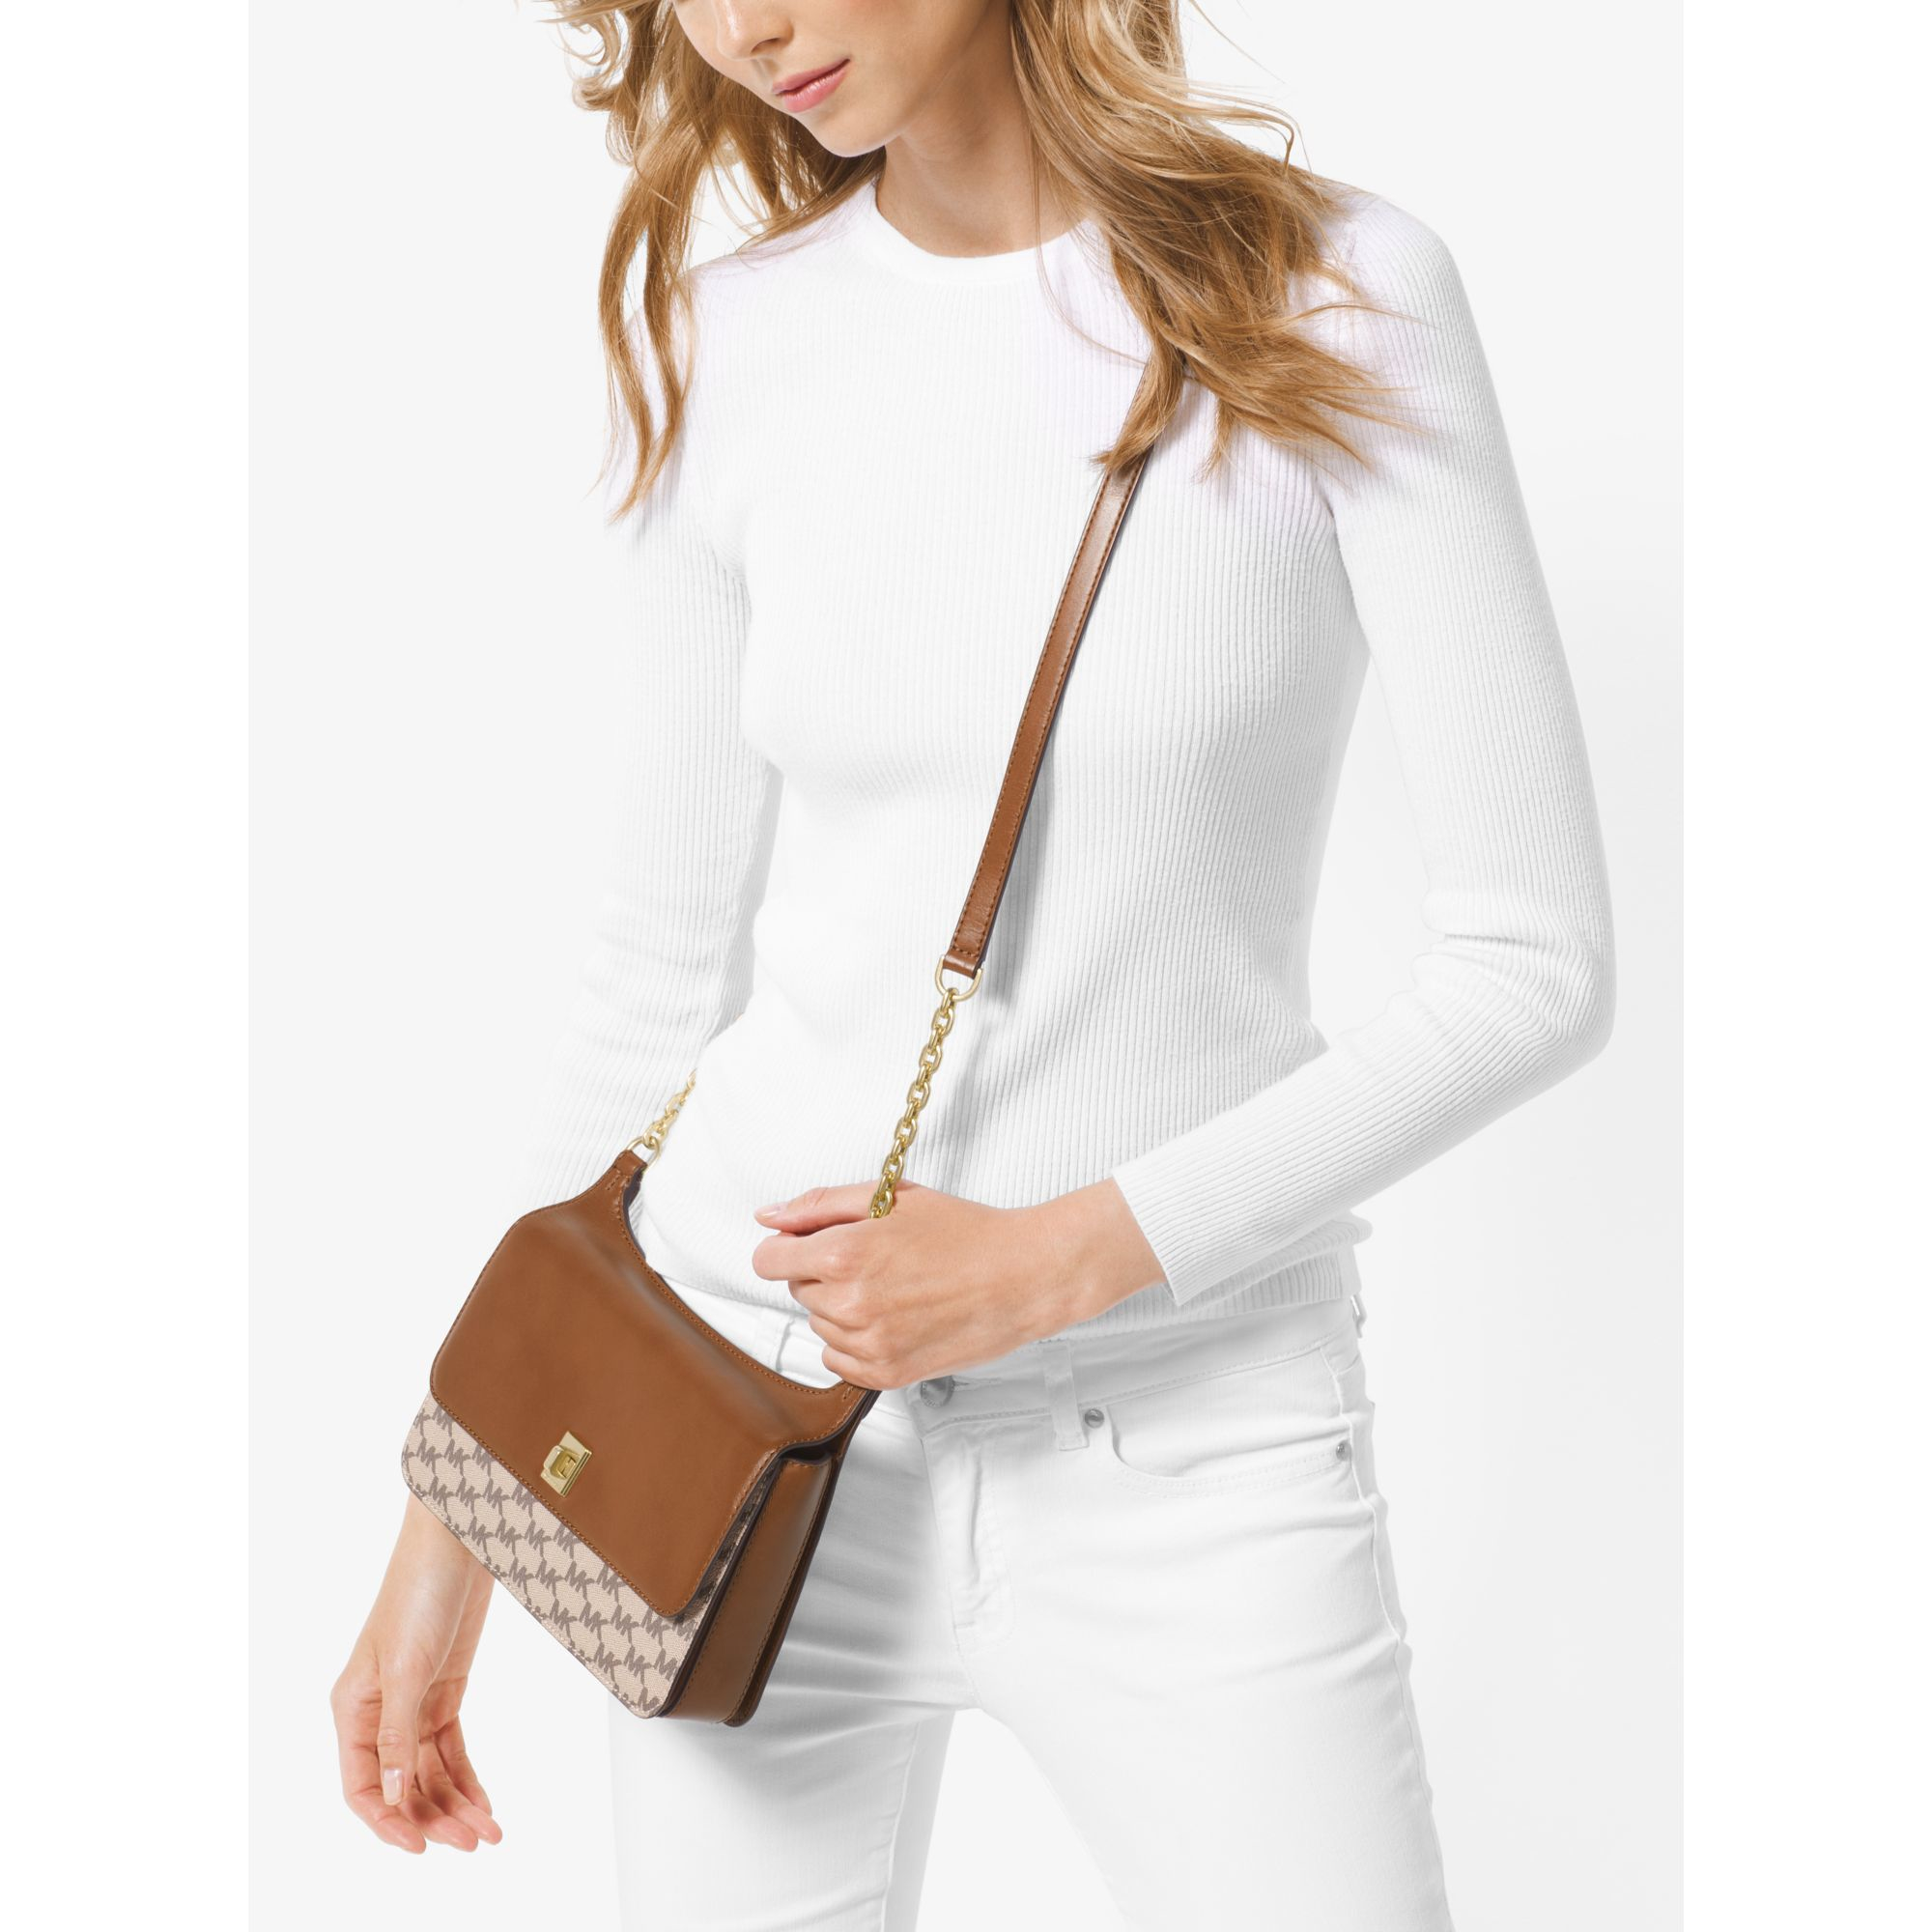 dd2451674bf7 Lyst - Michael Kors Natalie Medium Heritage Signature Messenger in ...